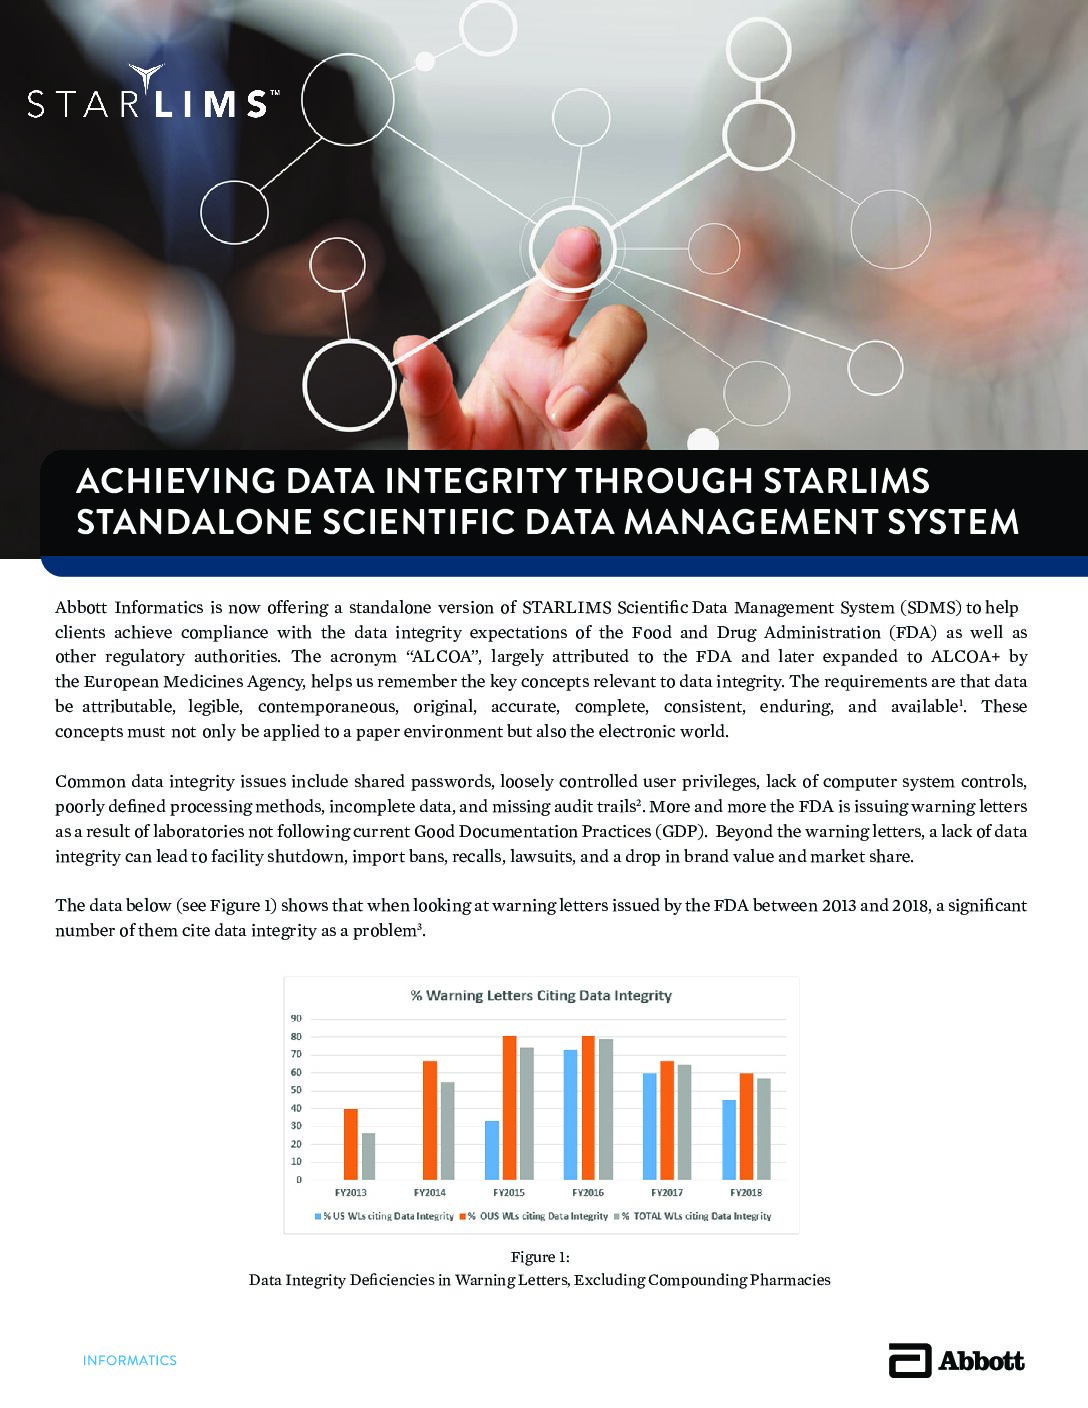 Achieving data integrity through Starlims standalone scientific data management system